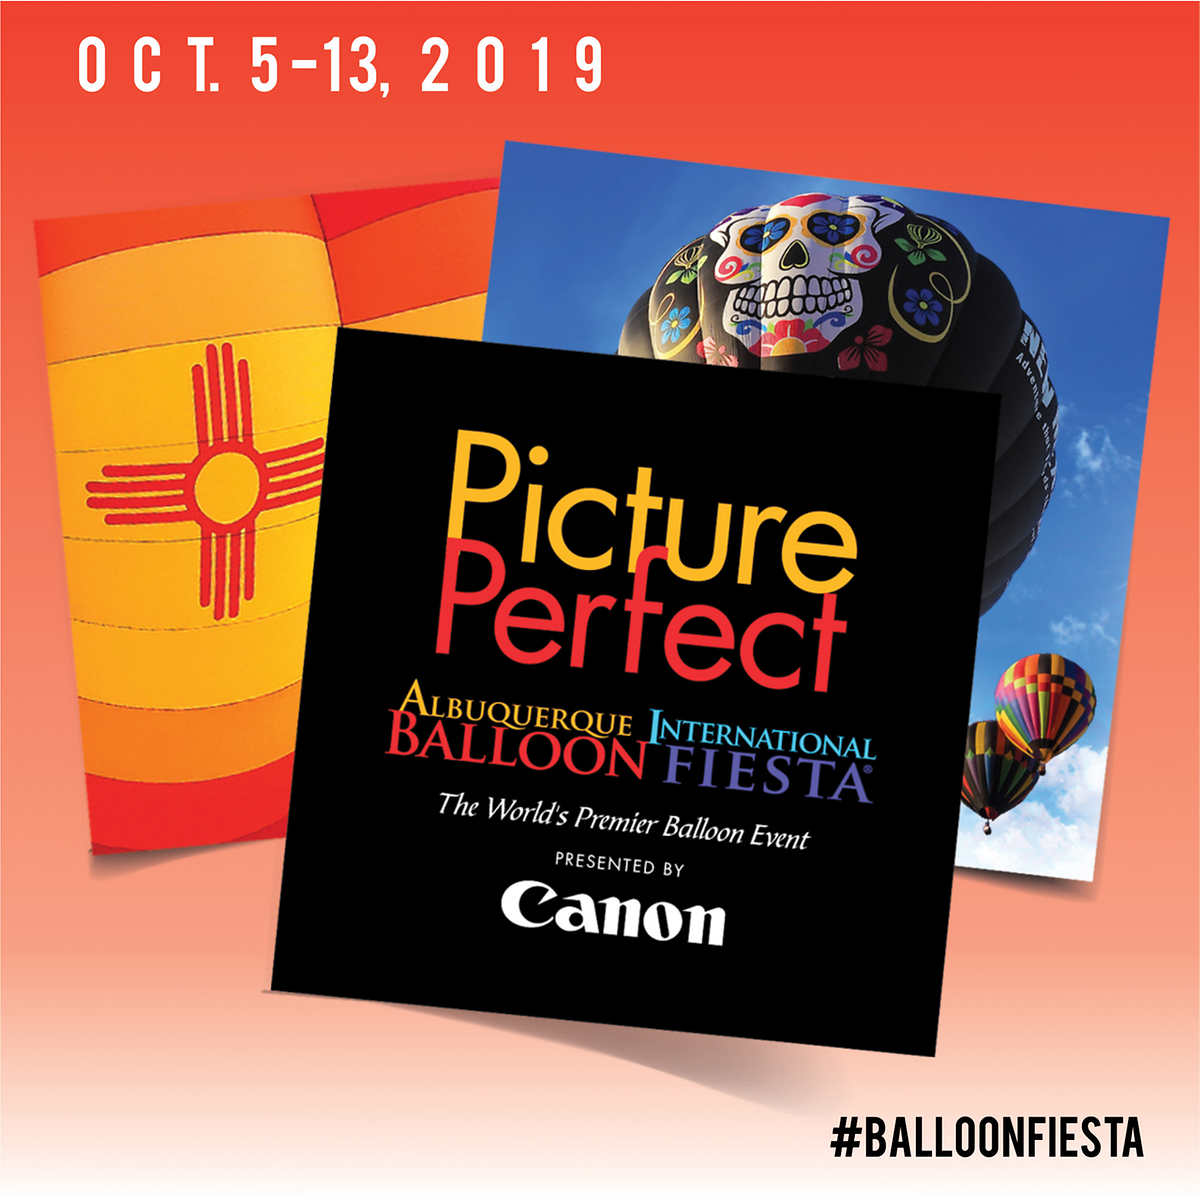 Albuquerque Balloon Fiesta 4-pack, eTickets, New Mexico